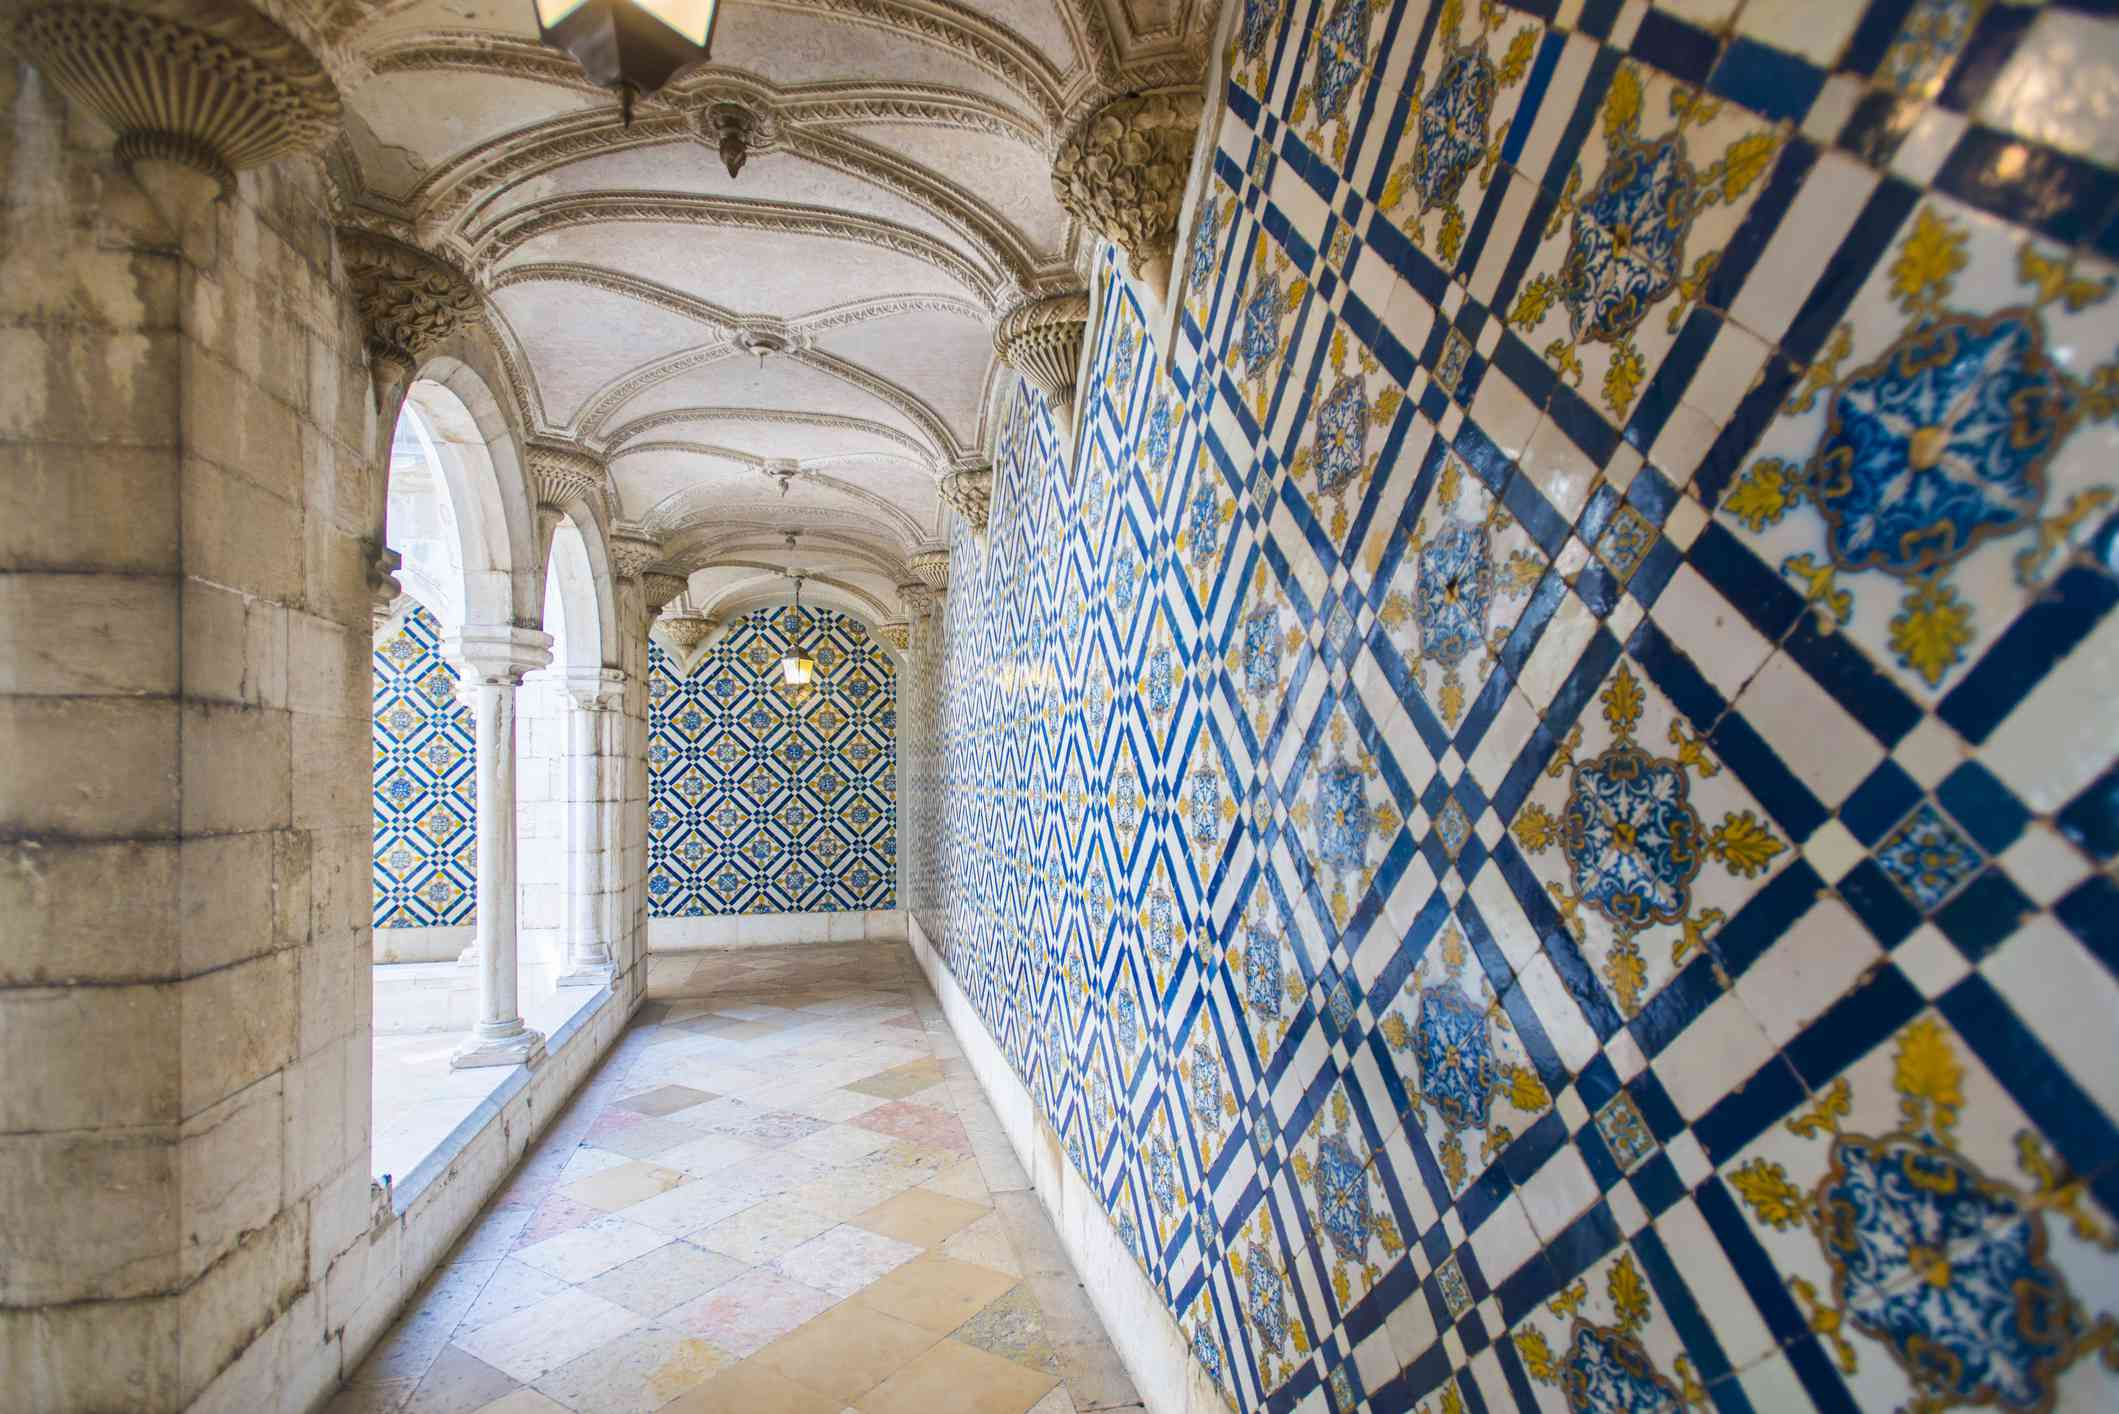 Walls covered in beautuful Azelejo tiles on display at The National Azulejo Museum in Lisbon, Portugal